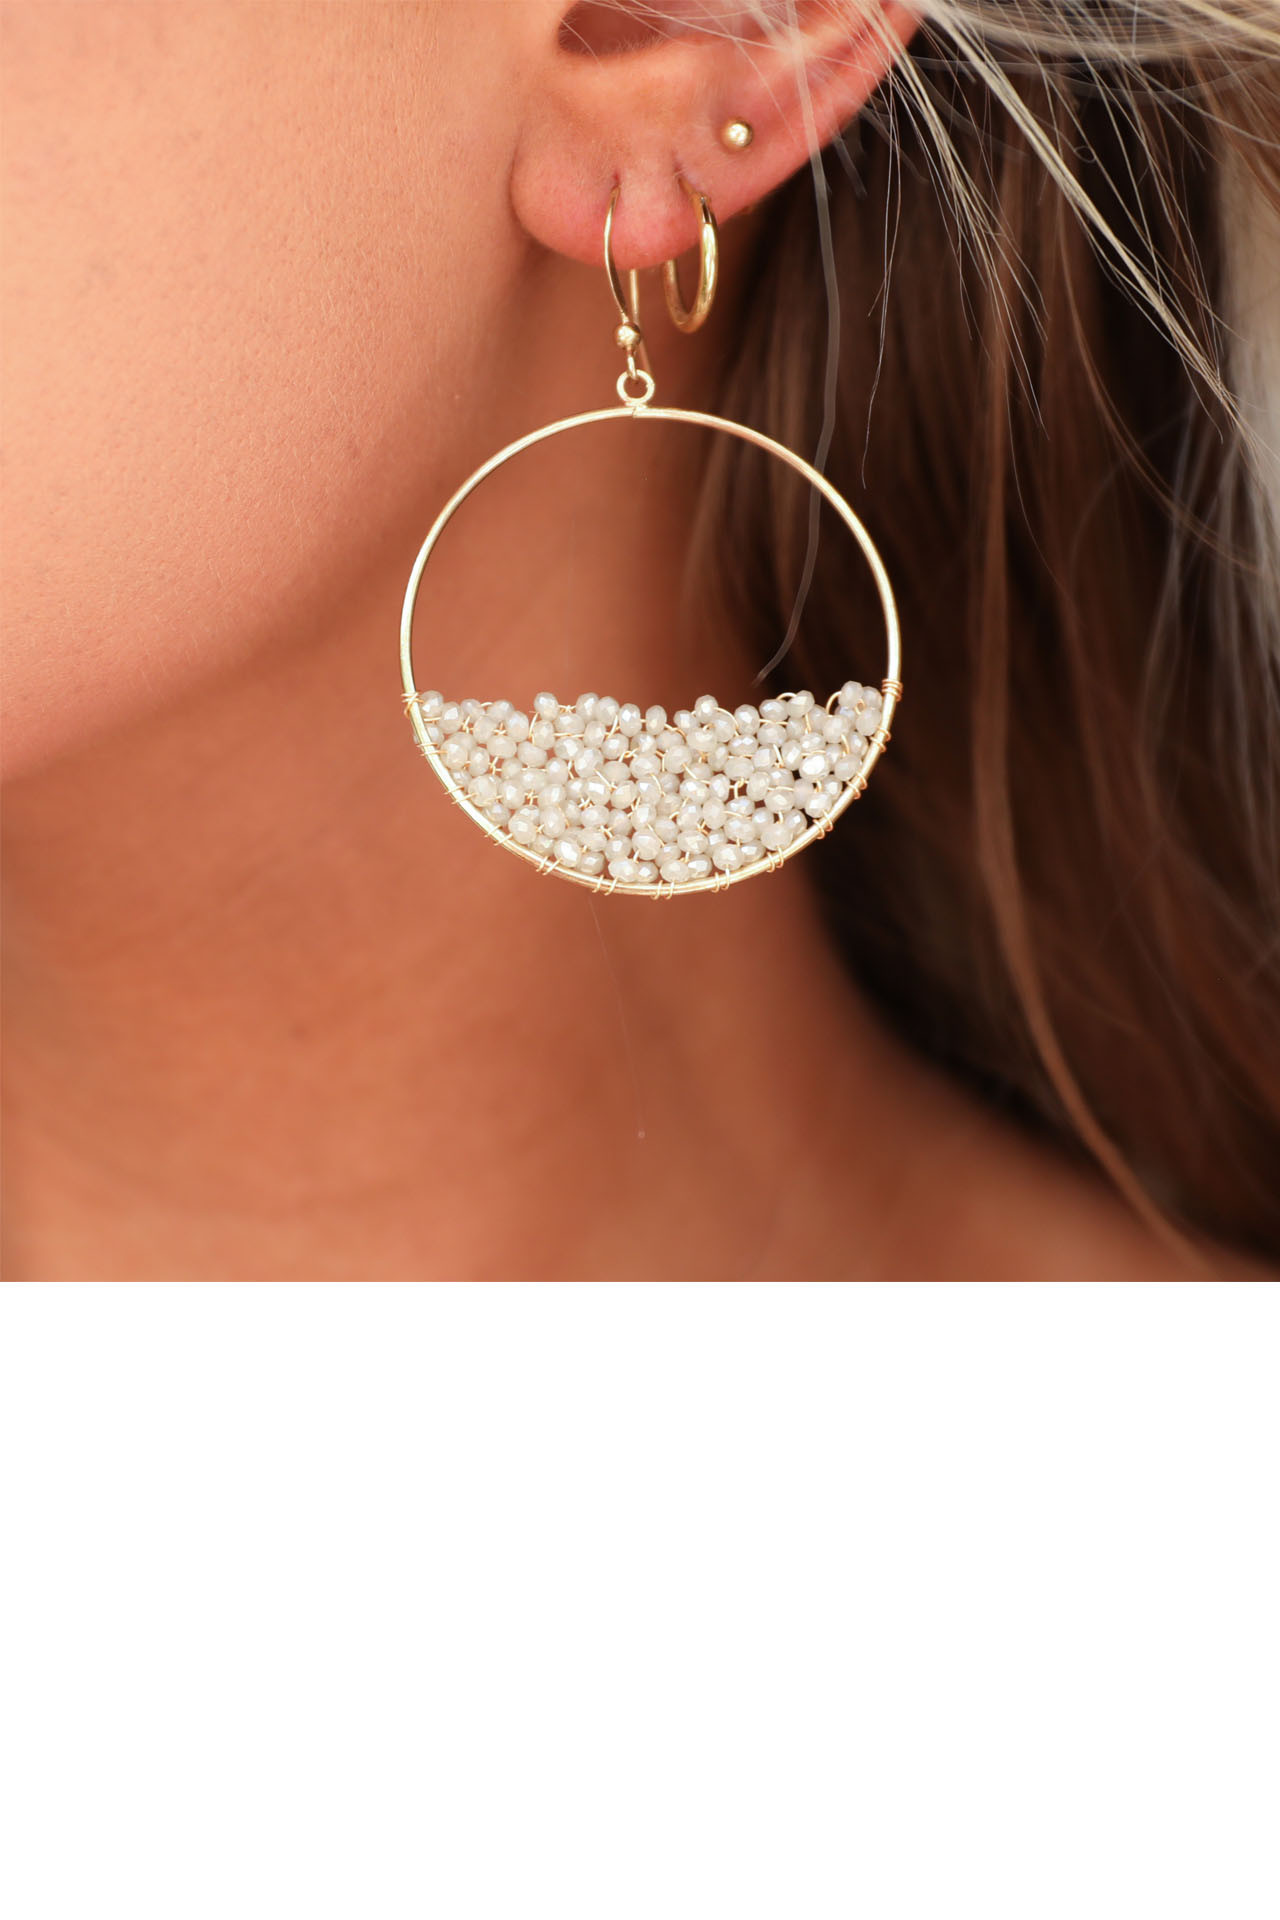 Gold Hoop Earrings with Half Full Natural Crystal Bead Detail front close up